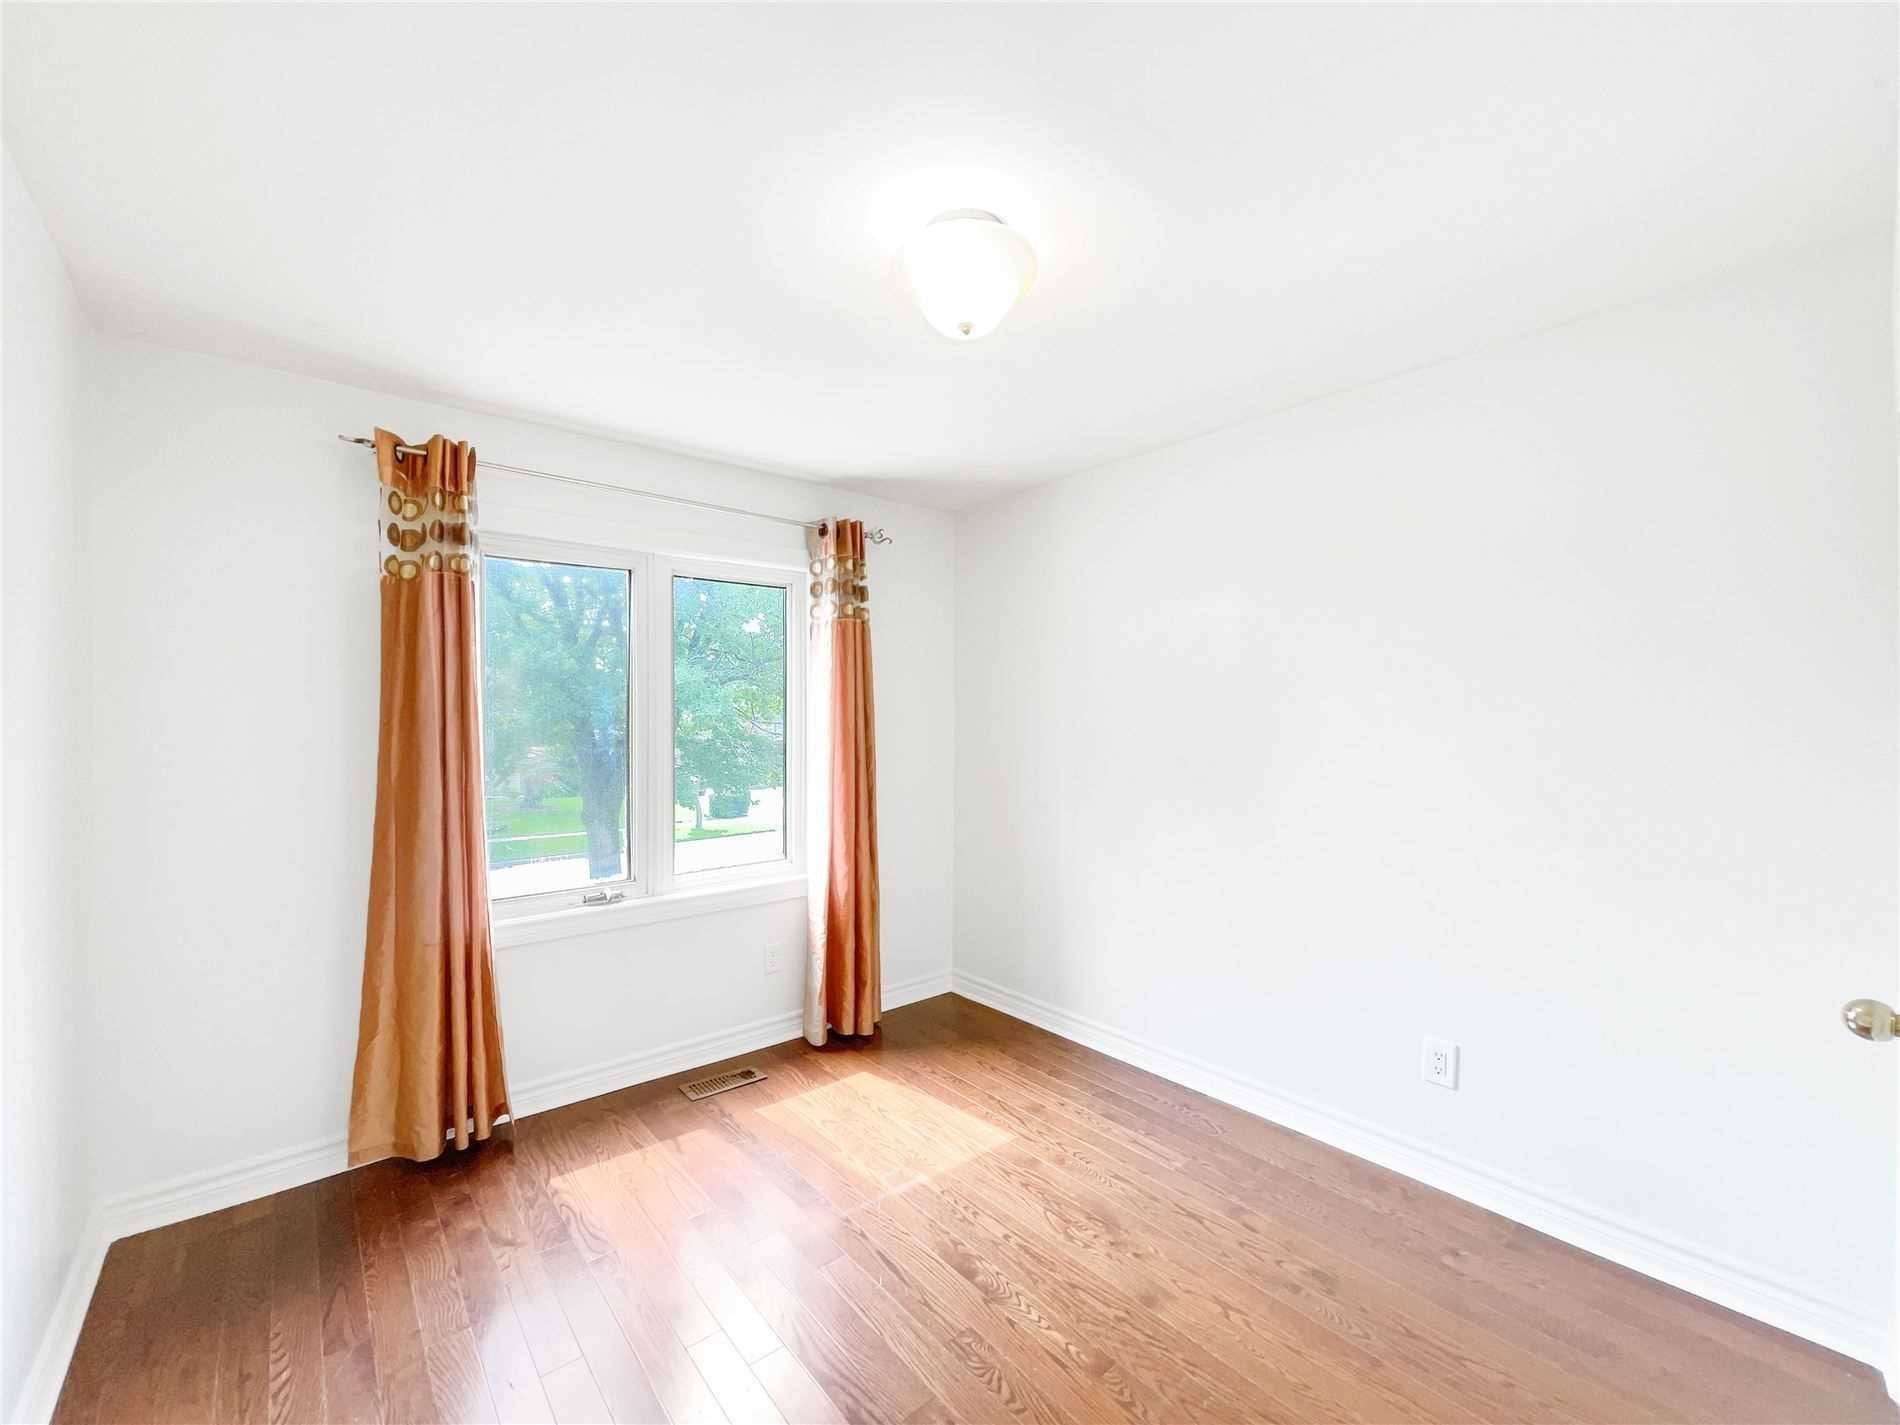 Detached house For Sale In Mississauga - 1183 Fleet St, Mississauga, Ontario, Canada L5H3P3 , 4 Bedrooms Bedrooms, ,4 BathroomsBathrooms,Detached,For Sale,Fleet